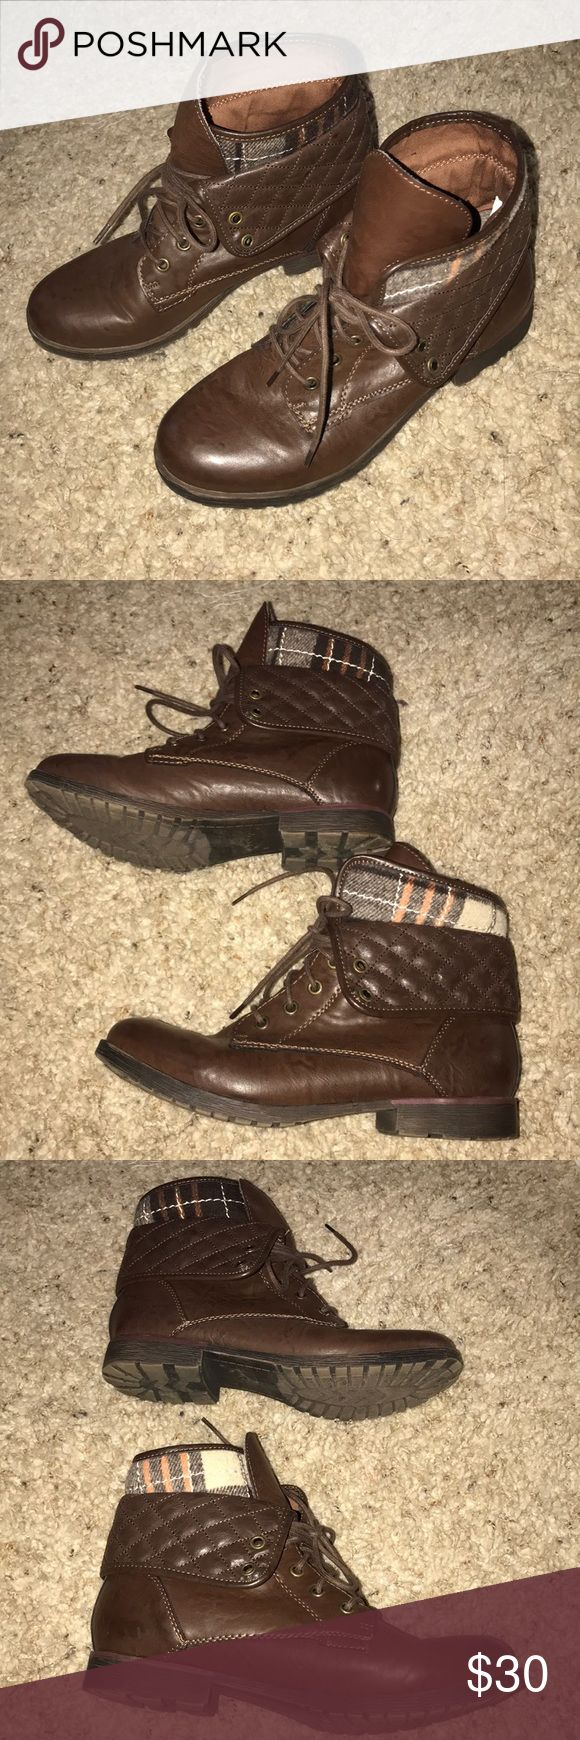 Rock and Candy Brown Boots Purchased from Nordstrom department store worn a handful of times in good condition. Rock and Candy Shoes